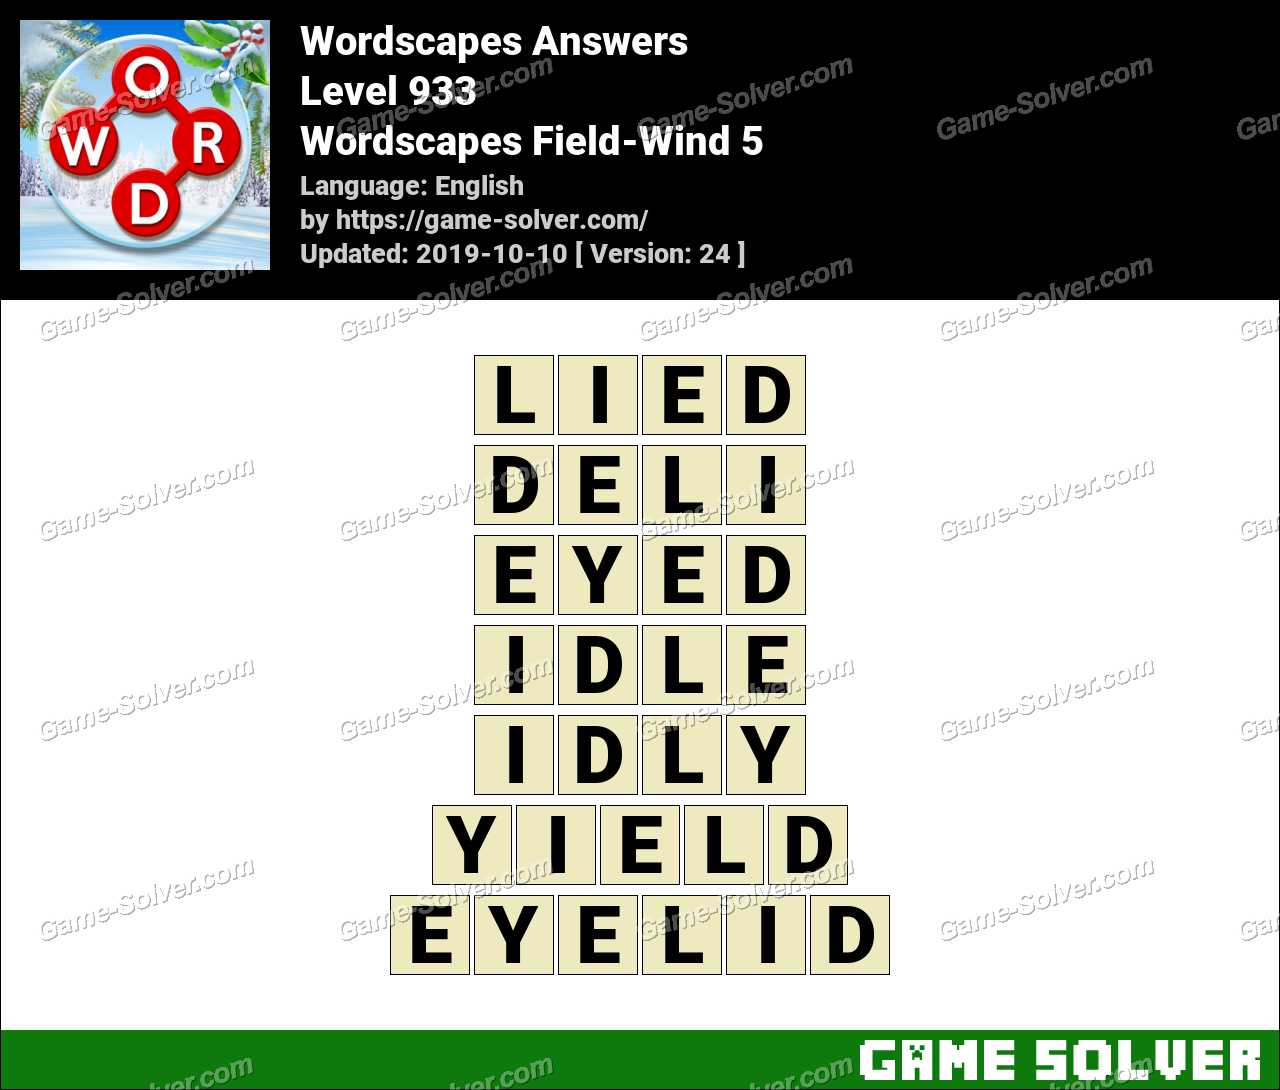 Wordscapes Field-Wind 5 Answers